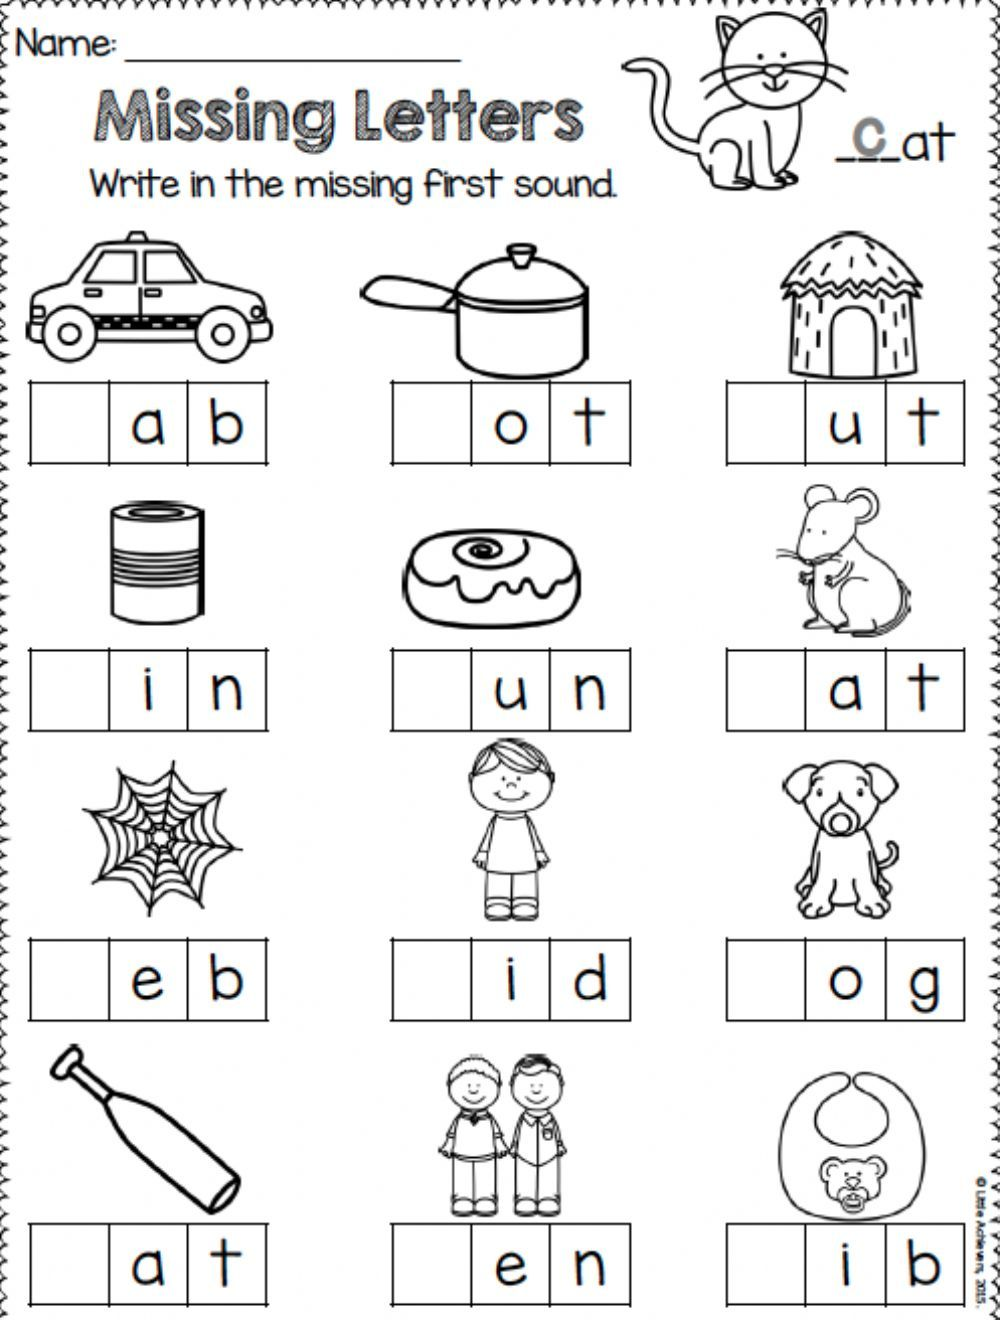 Missing Letters In Cvc Words Interactive And Downloadable Worksheet You Can Do The Exer In 2020 Missing Letter Worksheets Alphabet Letter Worksheets Letter Worksheets